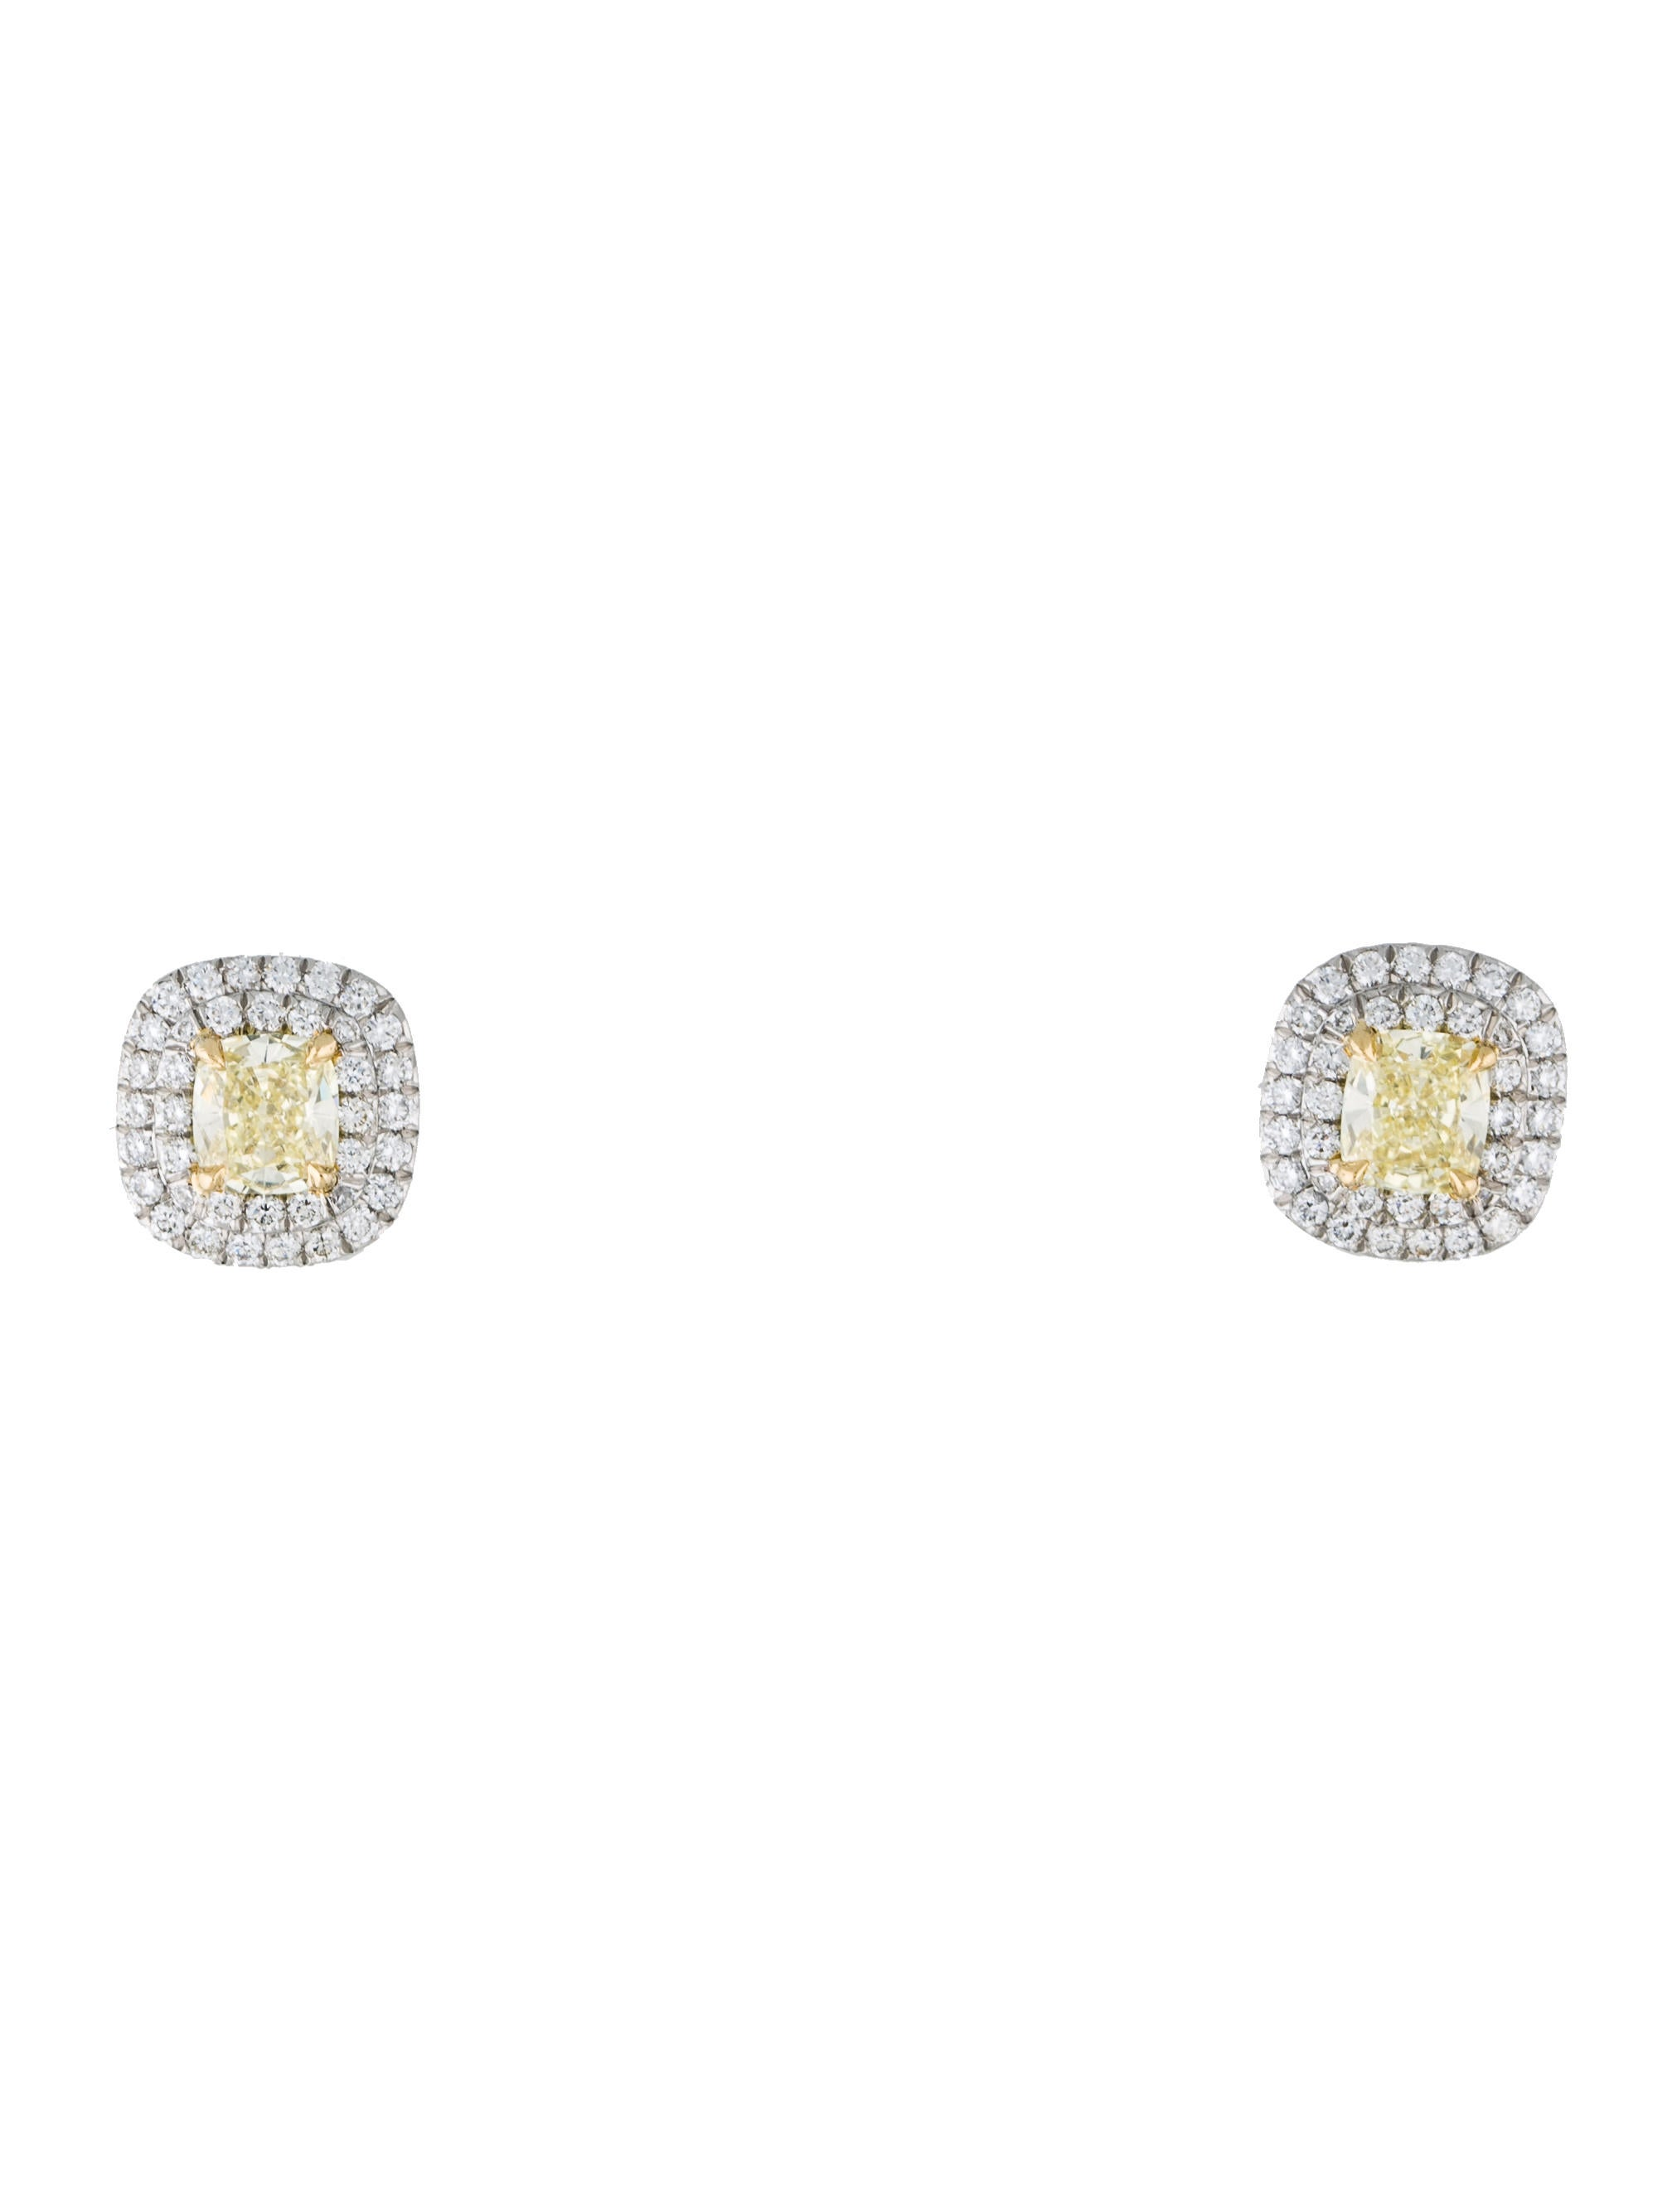 of exclusive earring designs diamond ct for best stud gold with real info online yellow women men earrings pesquisademercado